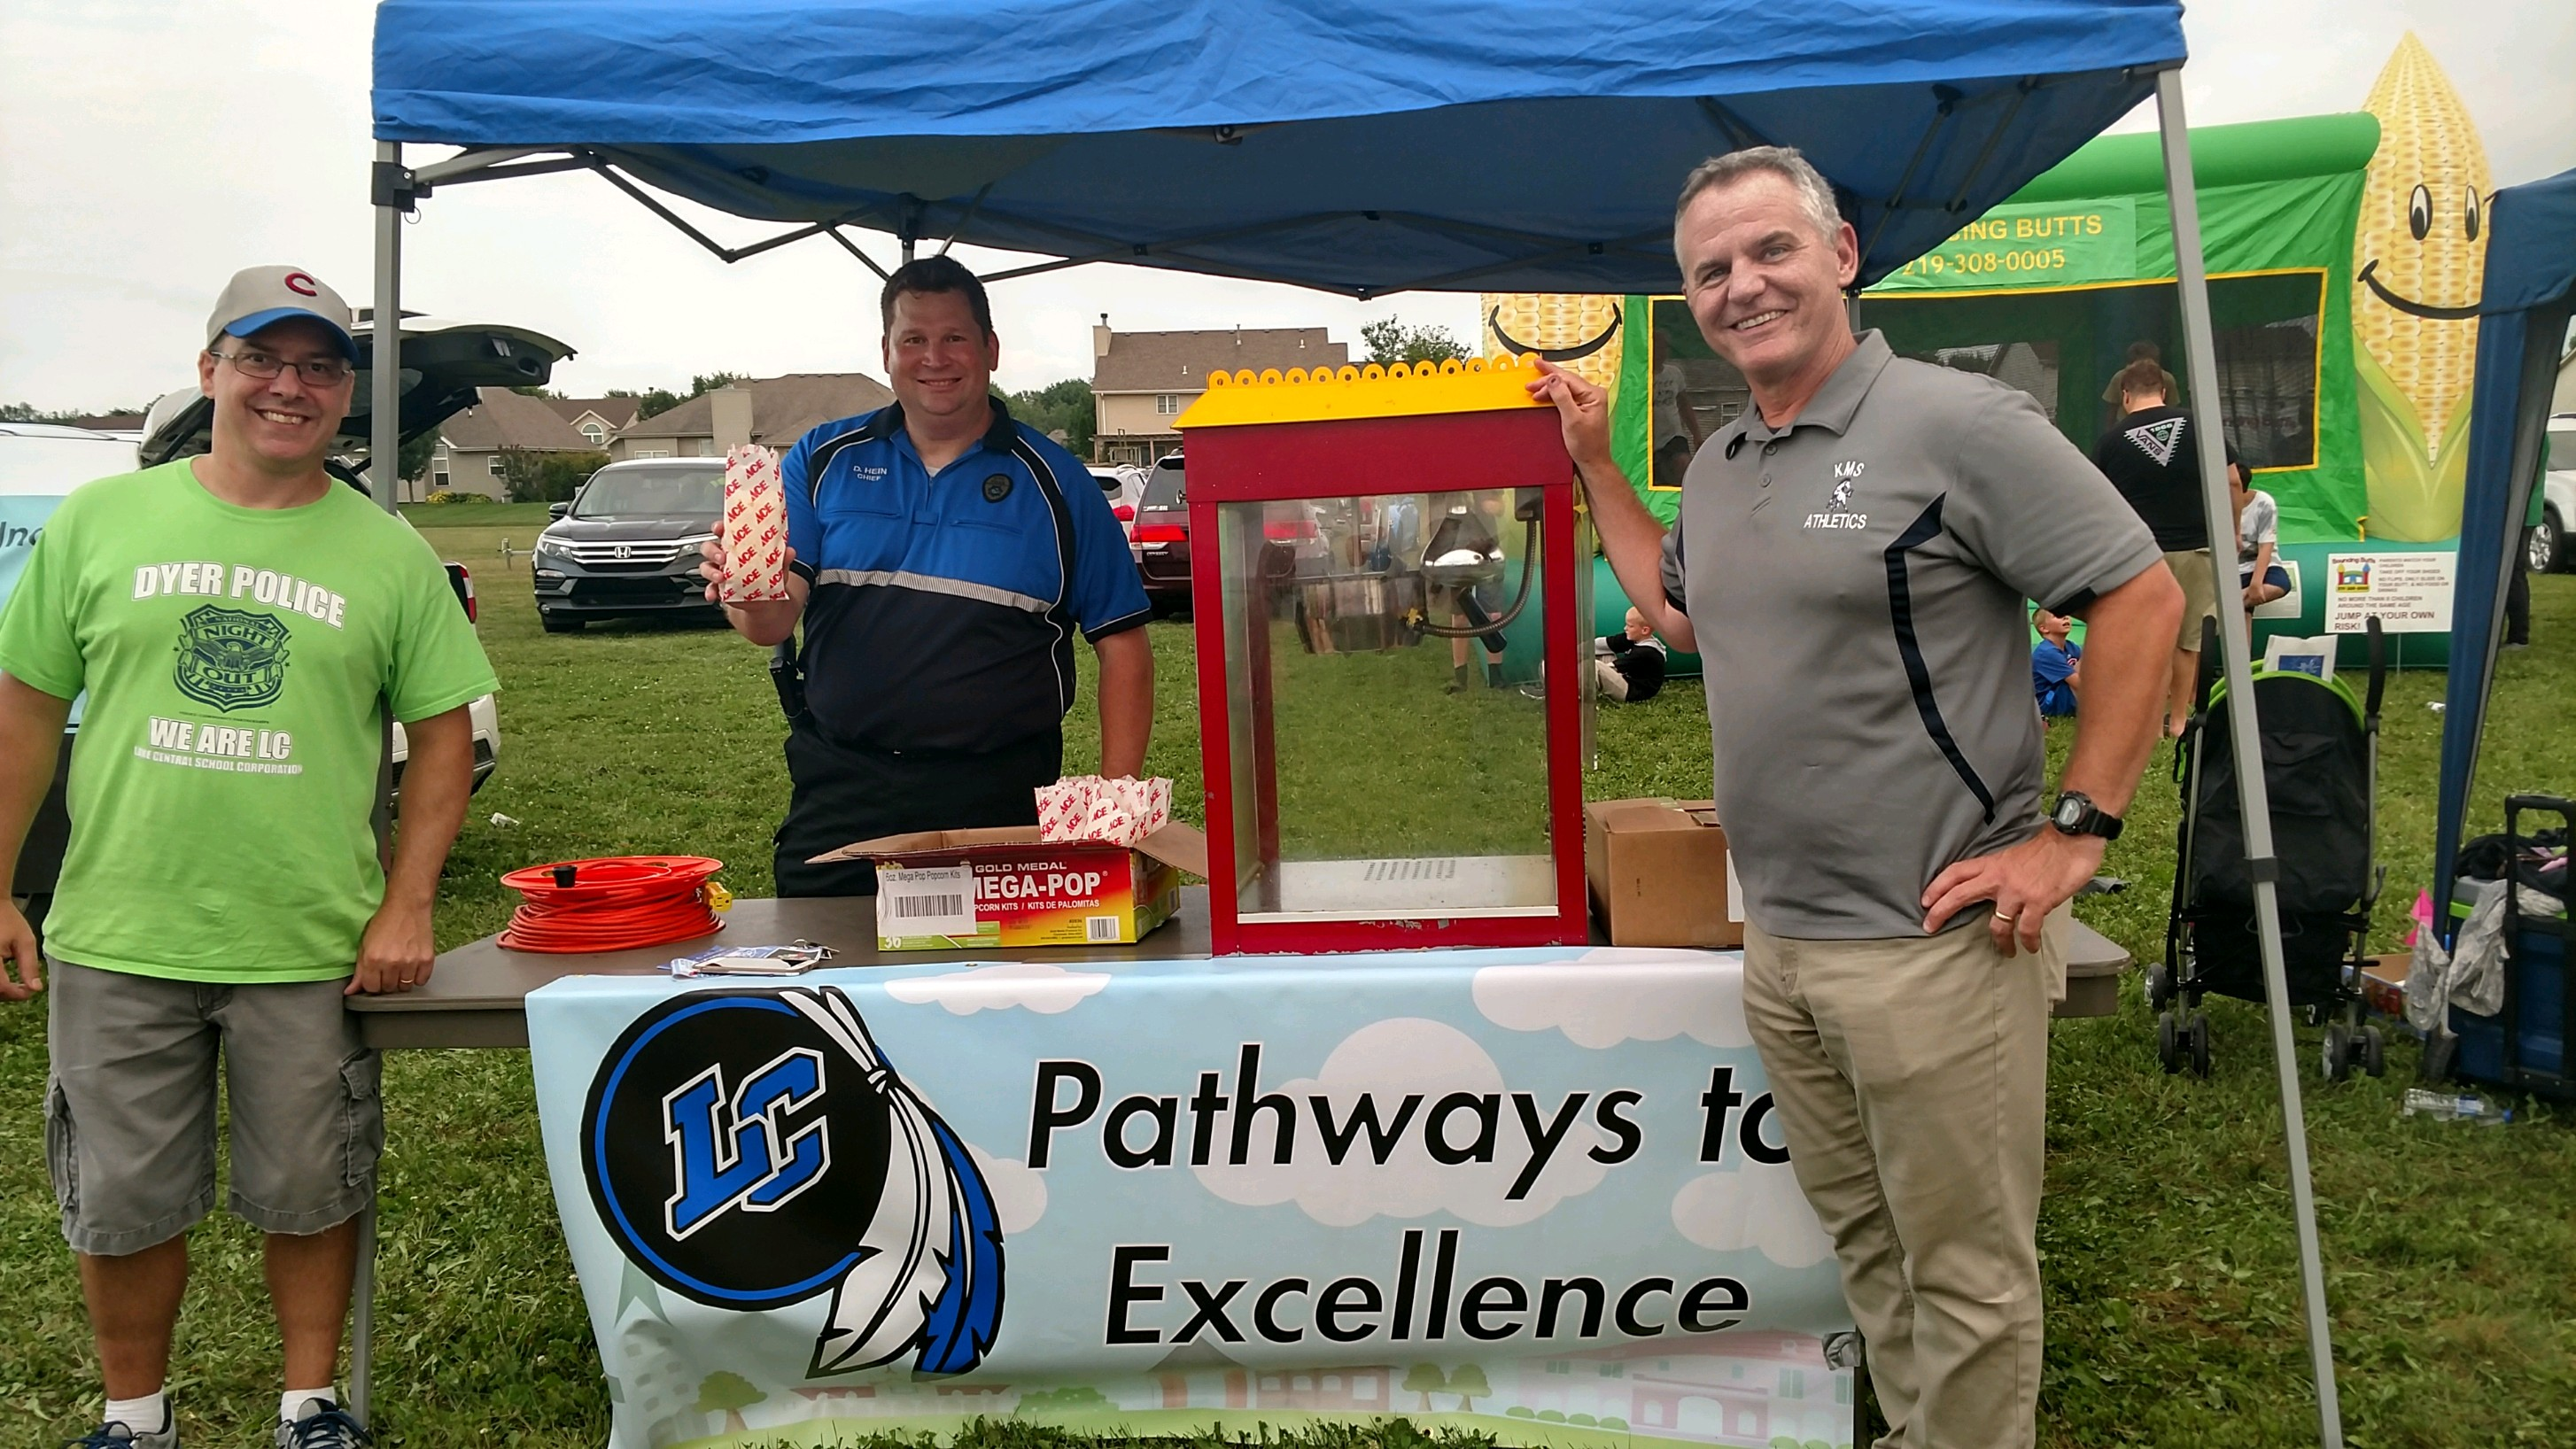 Kahler Principal Ken Newton, Dyer Police Chief (LC Graduate) David Hein, and Asst Principal Tim Doyle prepare to pop corn at the National Night Out in Central Park on Tuesday August 7th.